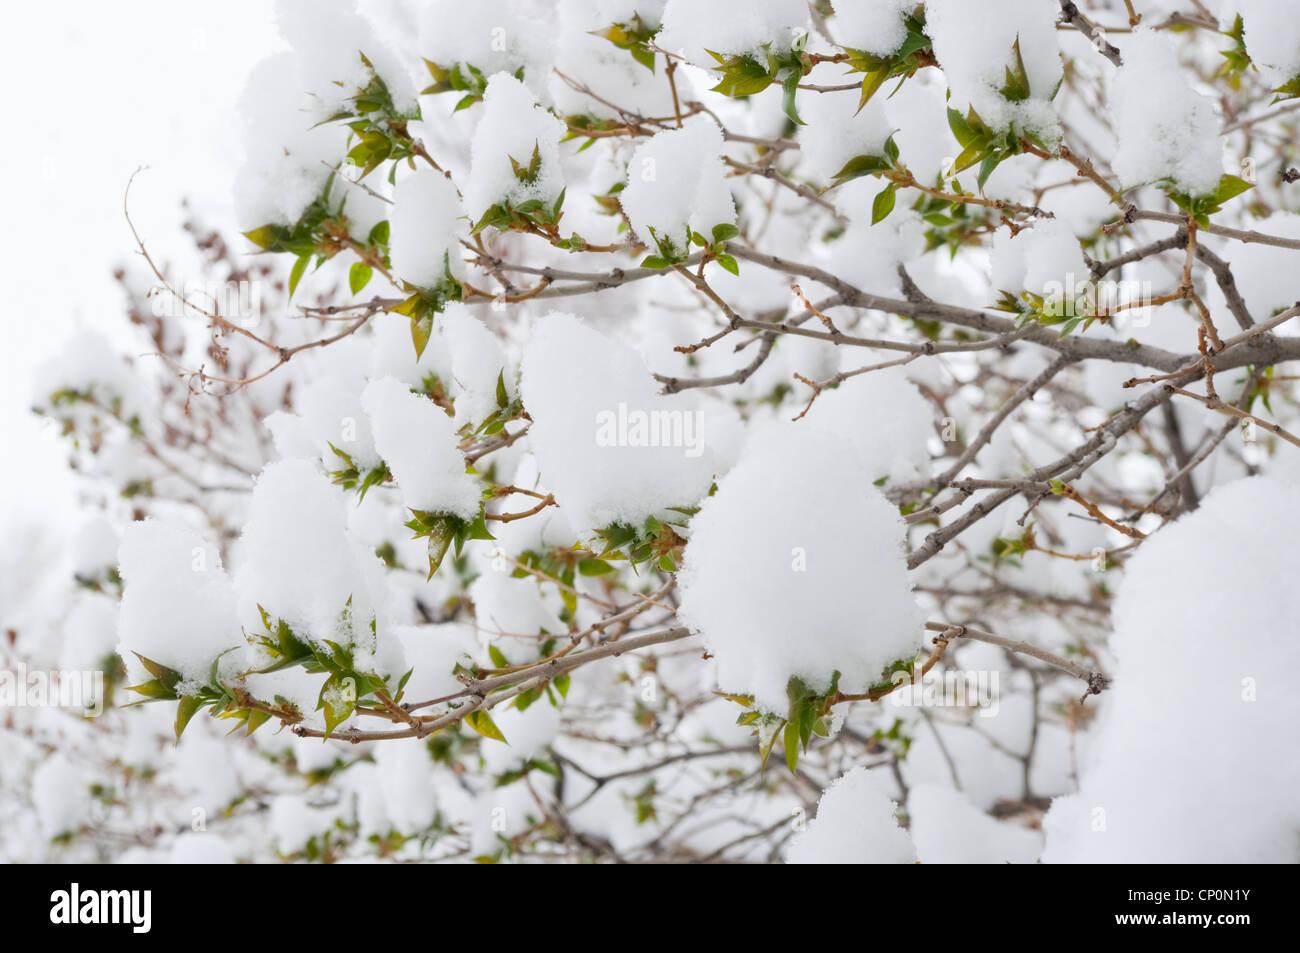 Snow covers the green leaves of a lilac bush (Syringa vulgaris), from a snowstorm, winter in Livingston, Montana, - Stock Image